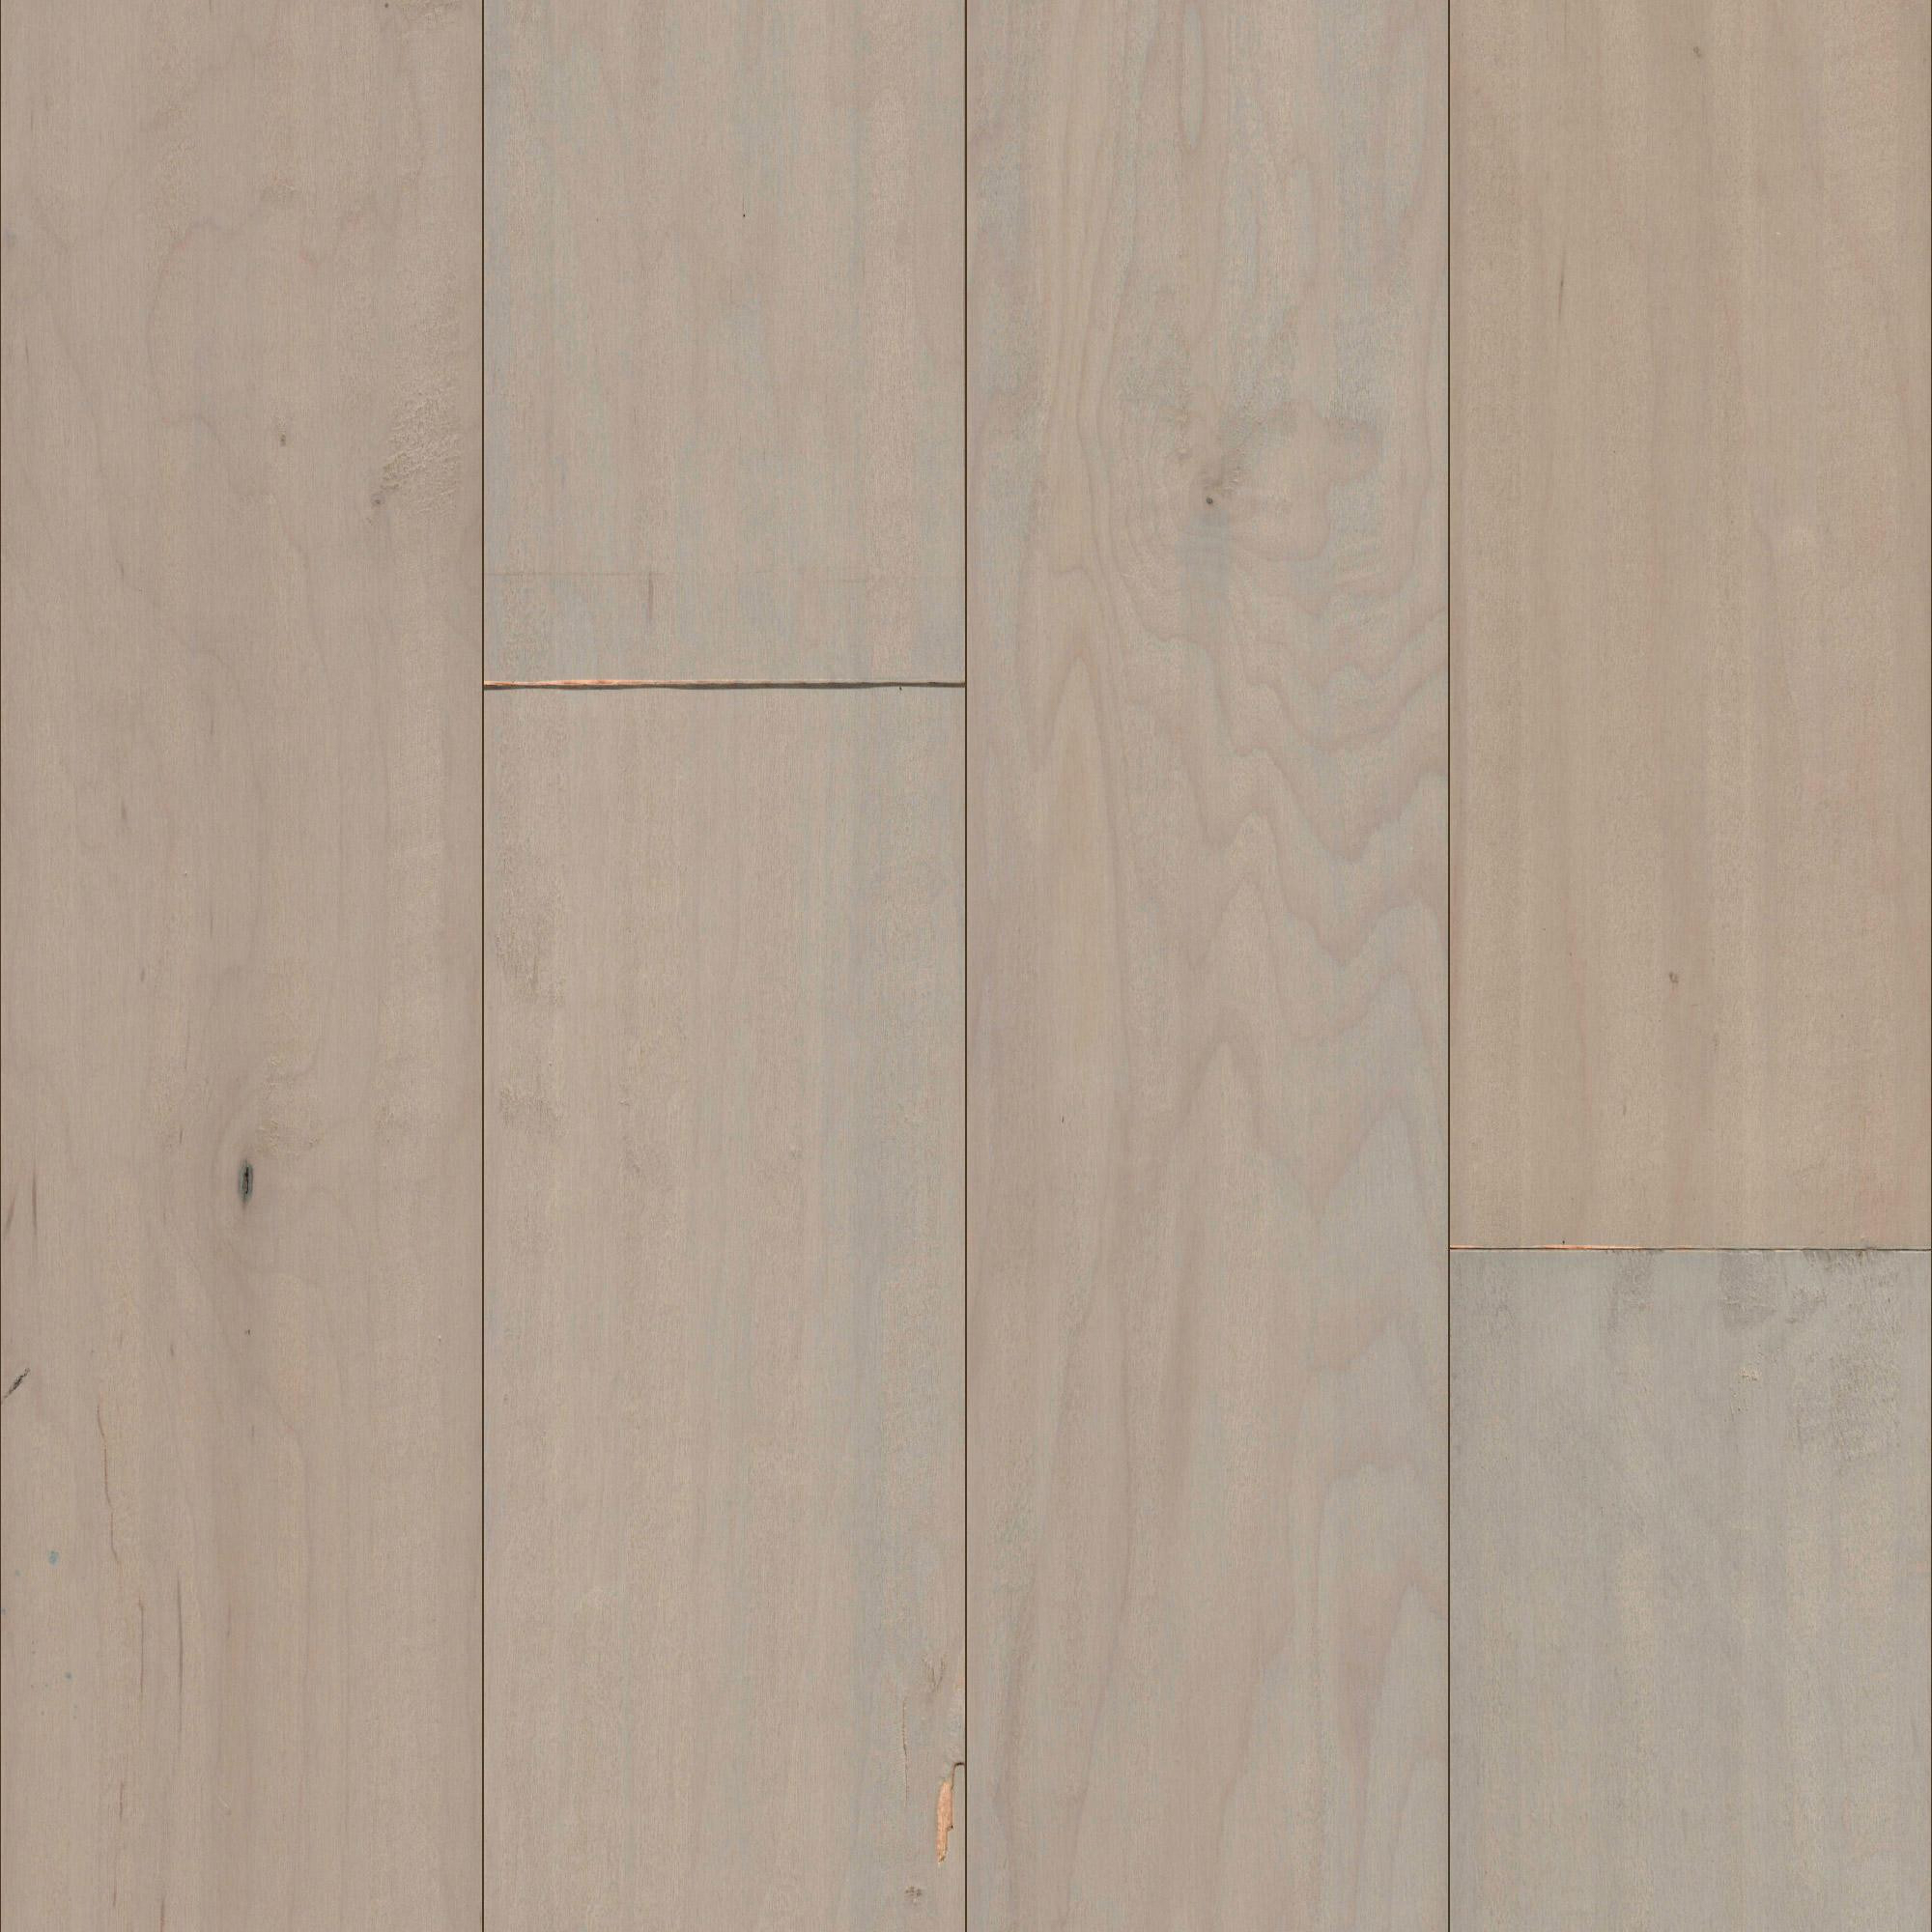 benefits of engineered hardwood flooring of mullican lincolnshire sculpted maple frost 5 engineered hardwood inside mullican lincolnshire sculpted maple frost 5 engineered hardwood flooring